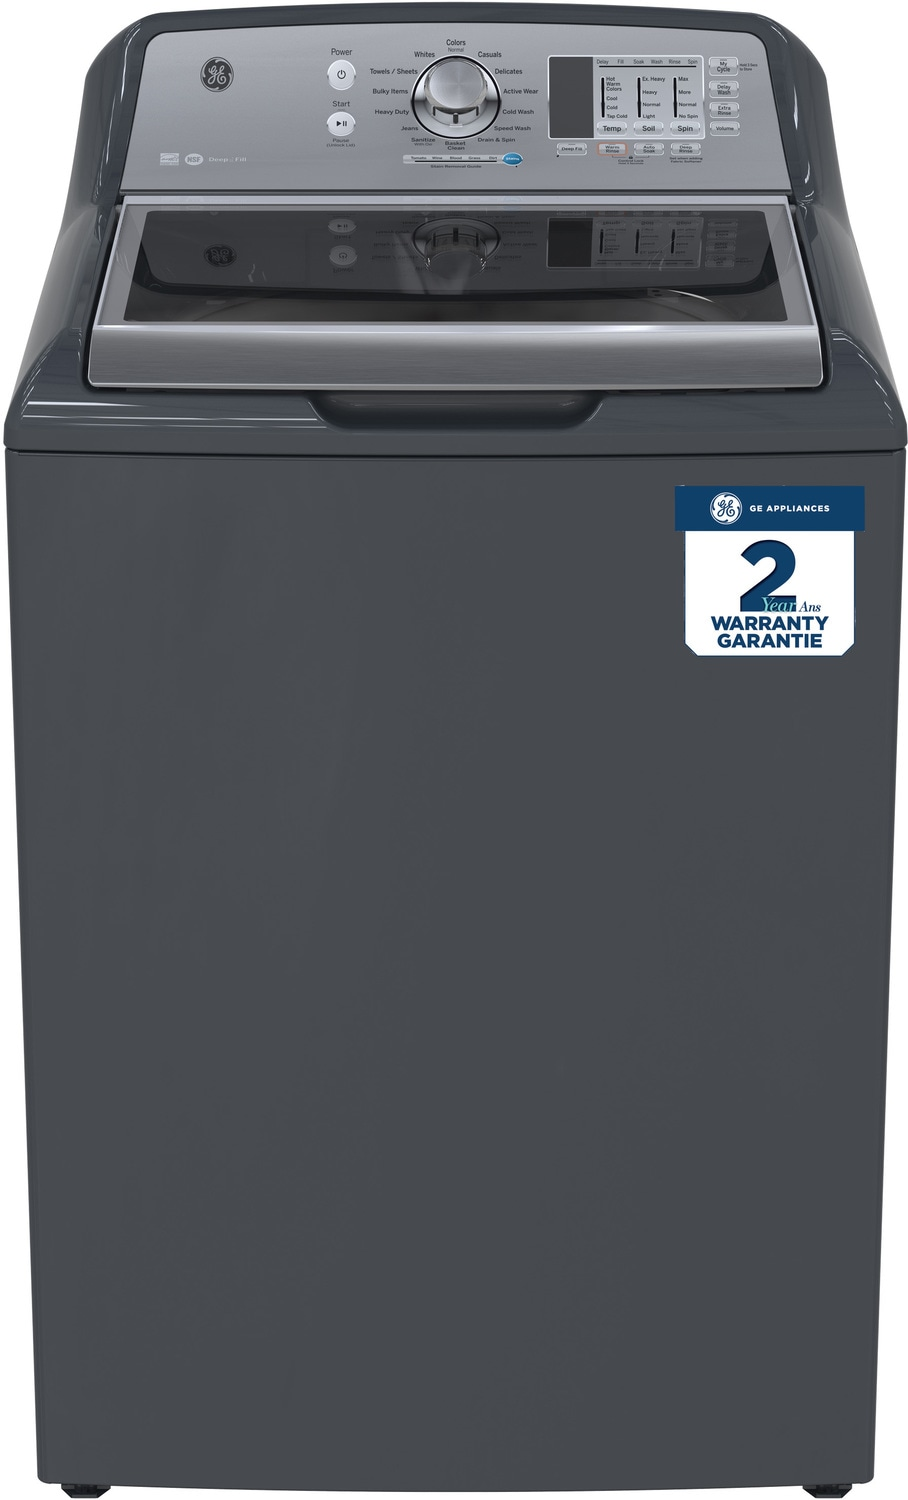 GE Diamond Grey Top-Load Washer (5.3 Cu. Ft. IEC) - GTW680BMKDG